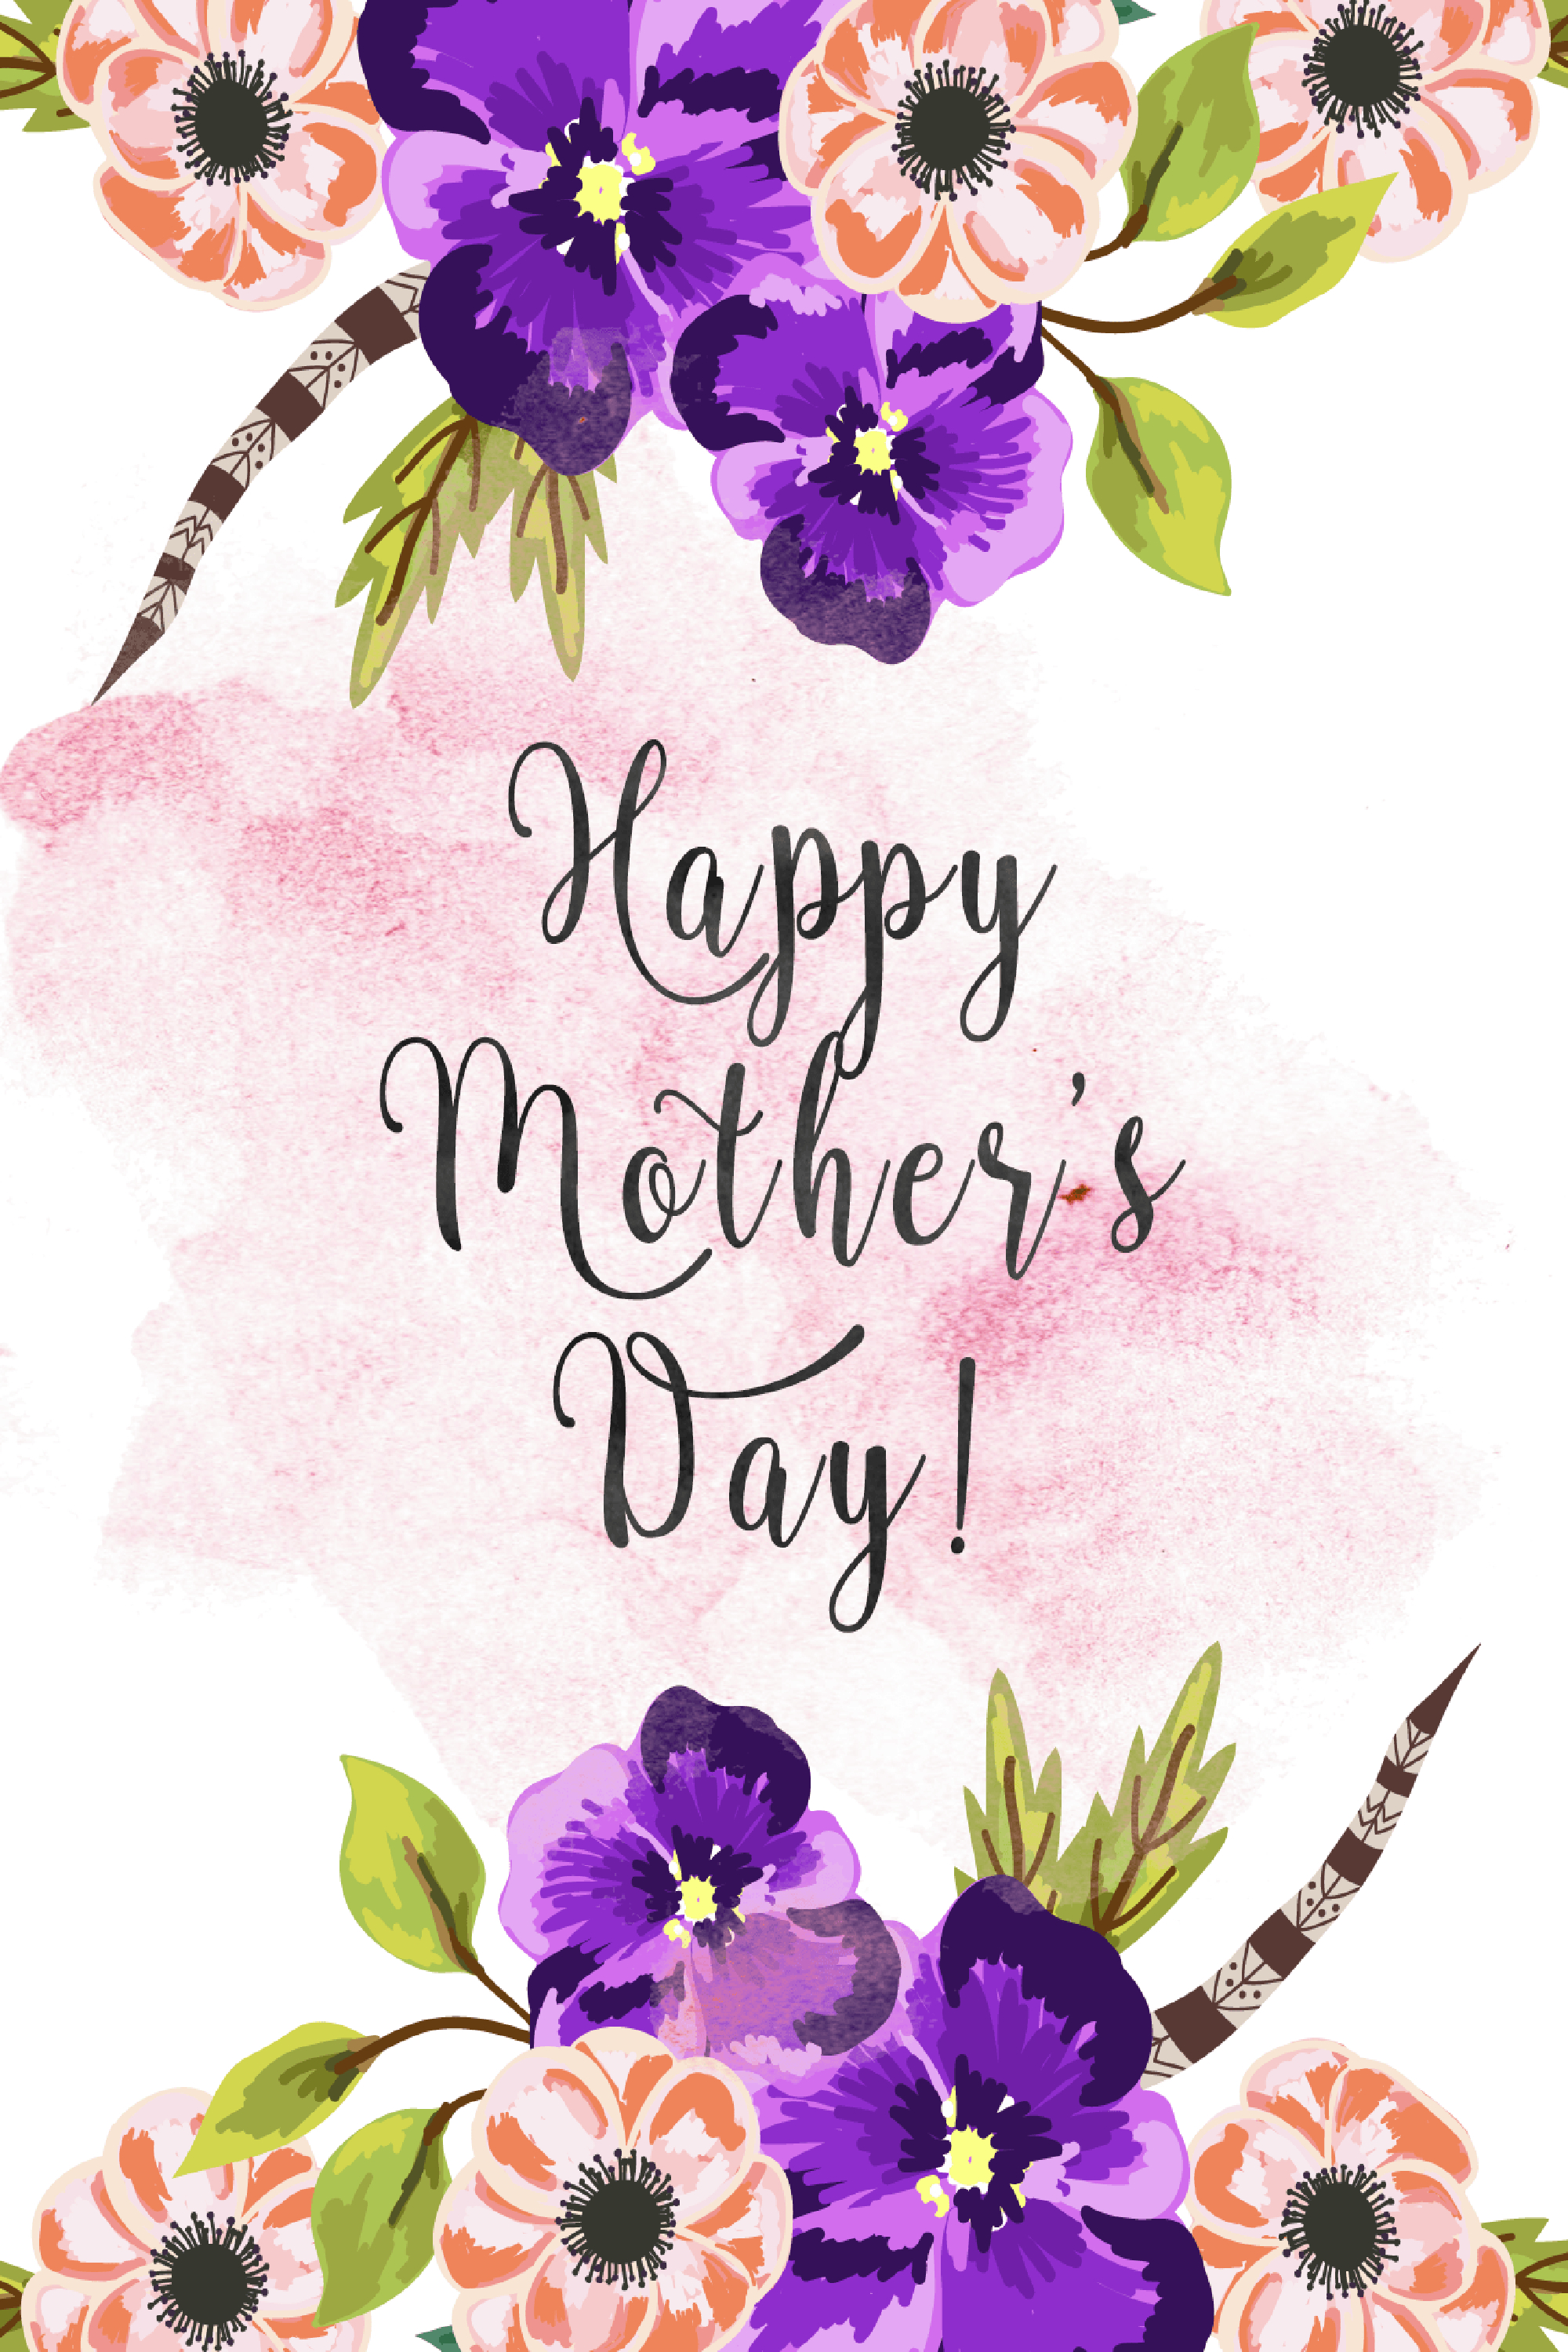 20 Cute Free Printable Mothers Day Cards - Mom Cards You Can Print - Make Mother Day Card Online Free Printable